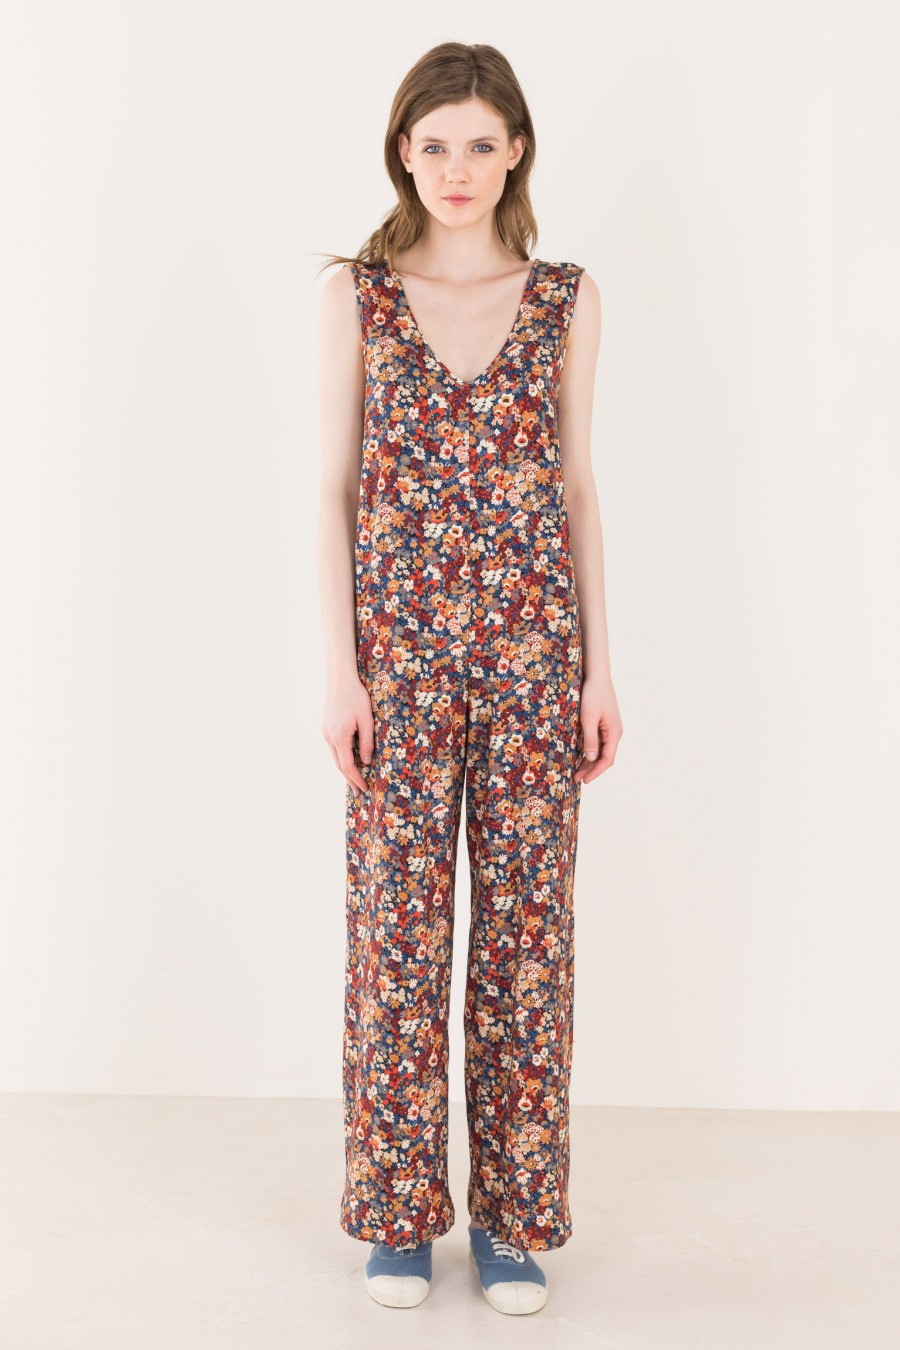 Flowered long overalls